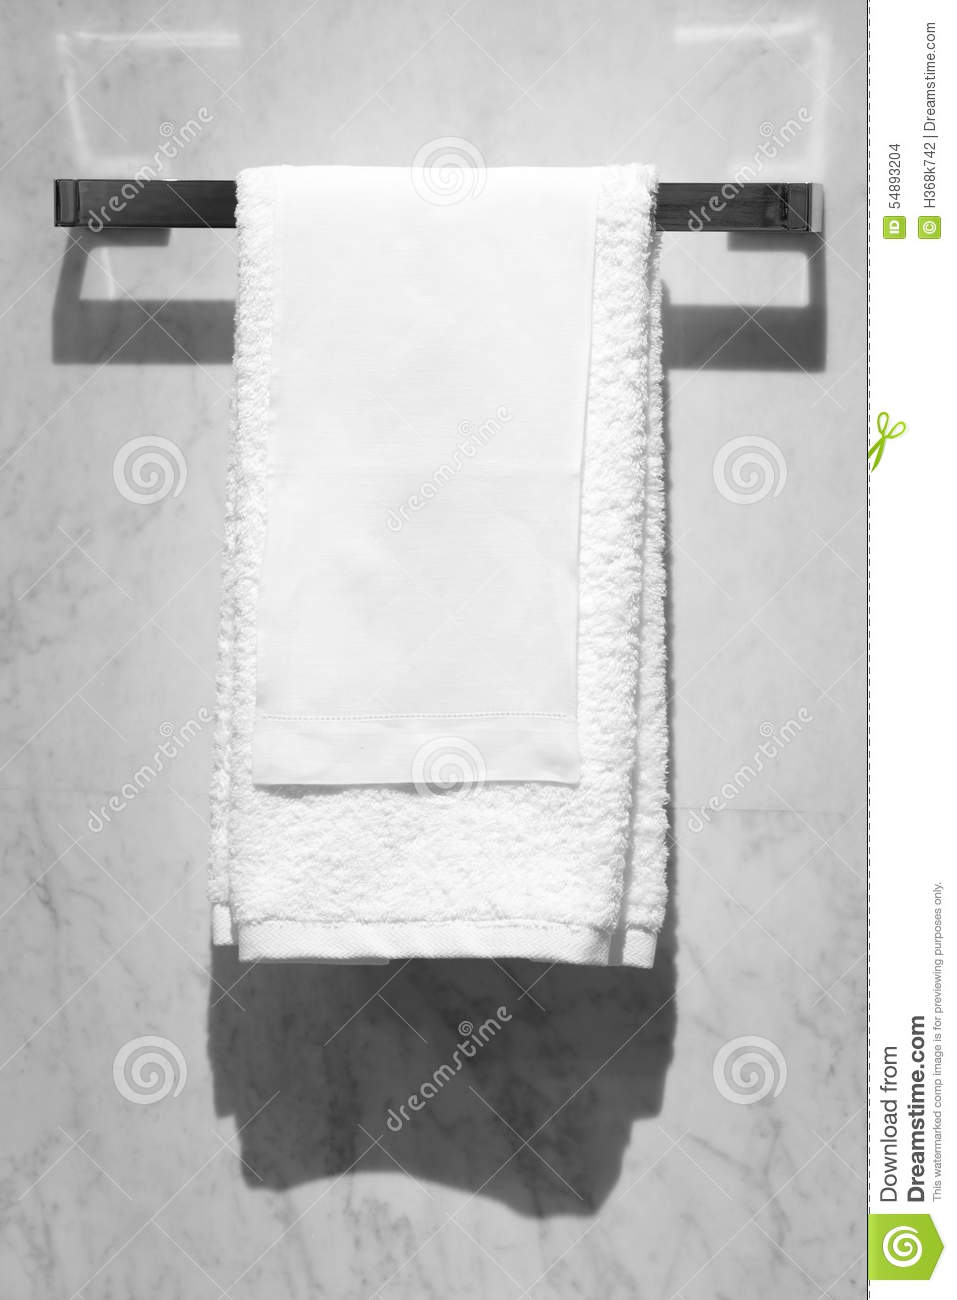 White Towel Hanging On A Marble Wall In A Bathroom Stock Photo - Image ...